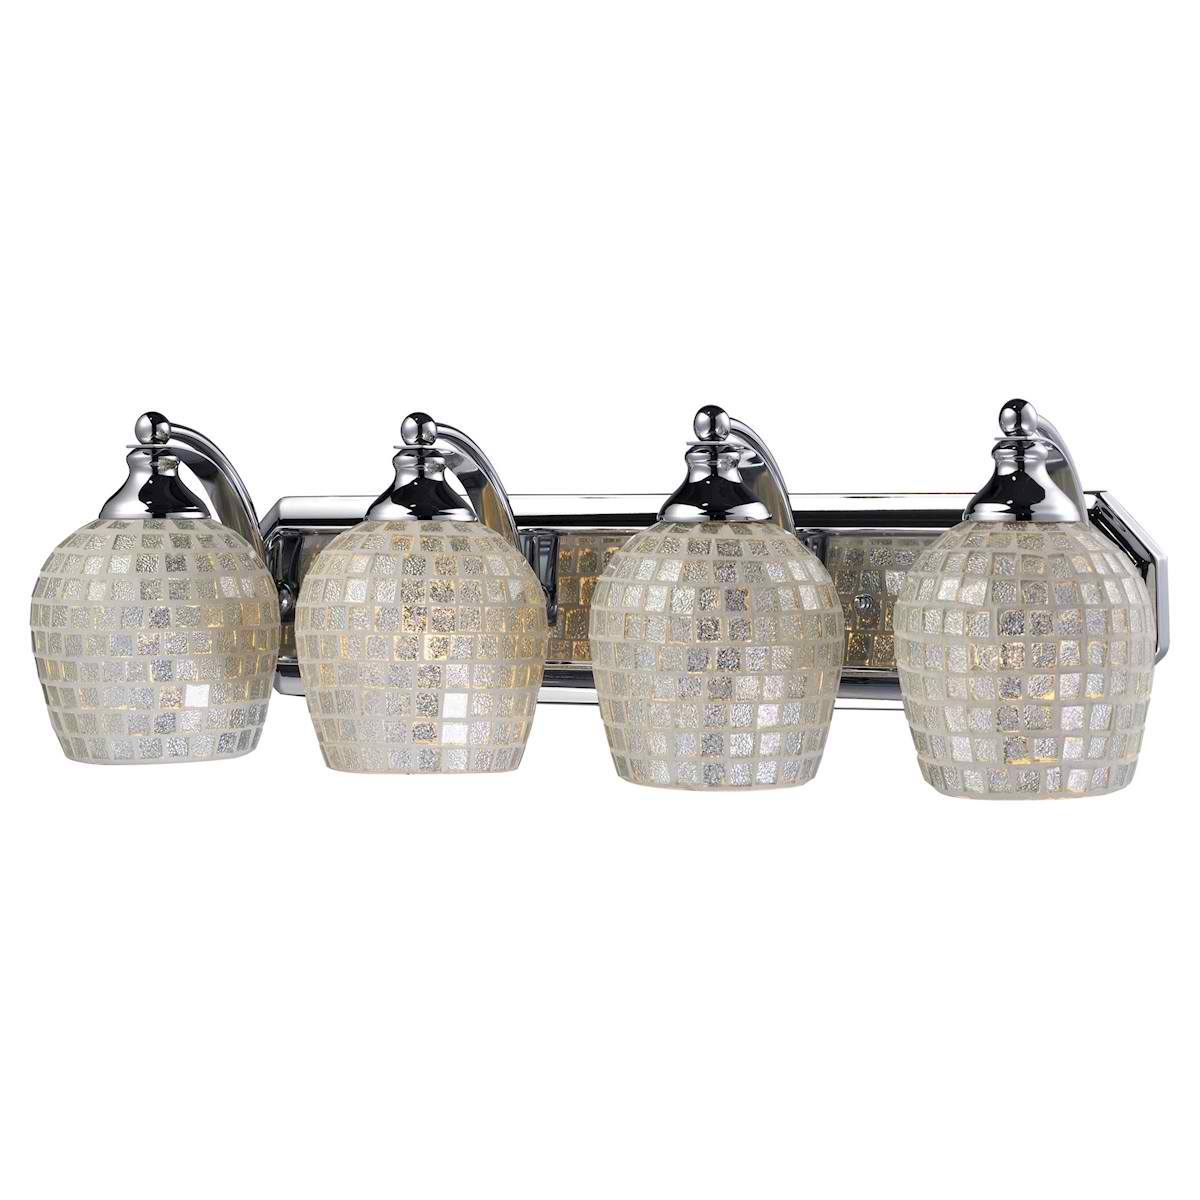 Vanity 4 Light Chrome with Silver Glass